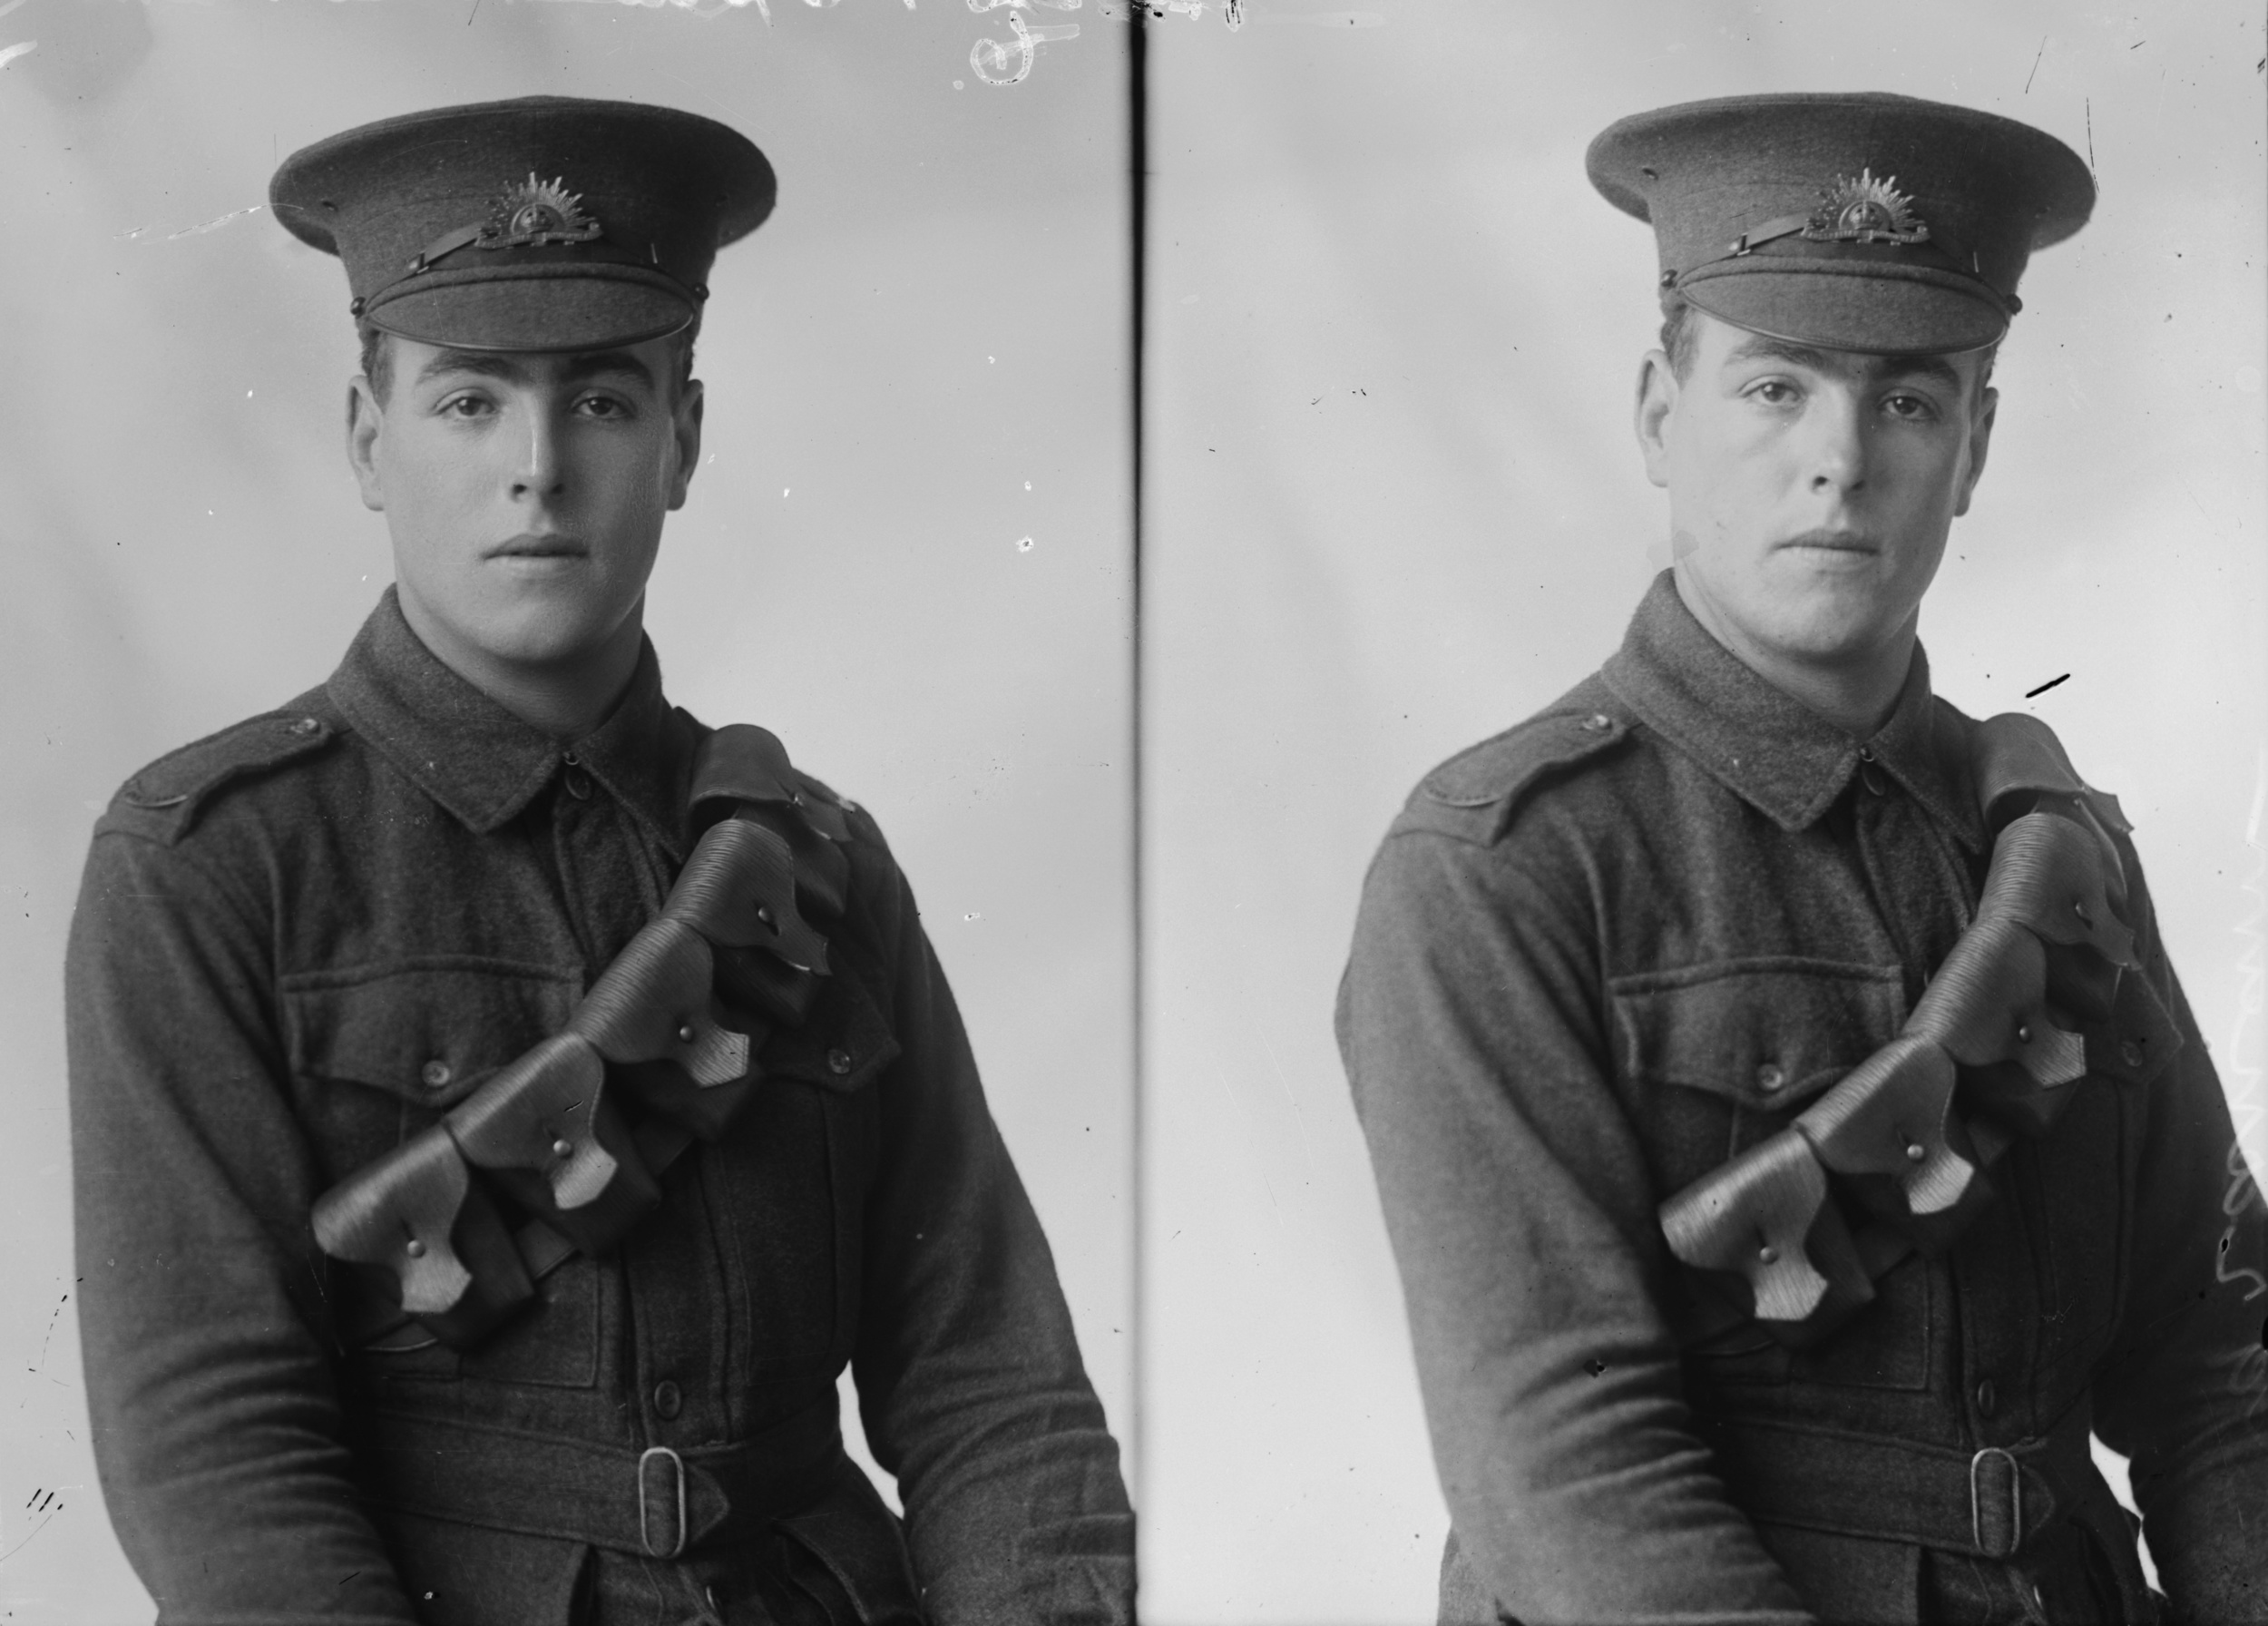 Photographed at the Dease Studio, 117 Barrack Street Perth WA Image courtesy of the State Library of Western Australia: 108175PD